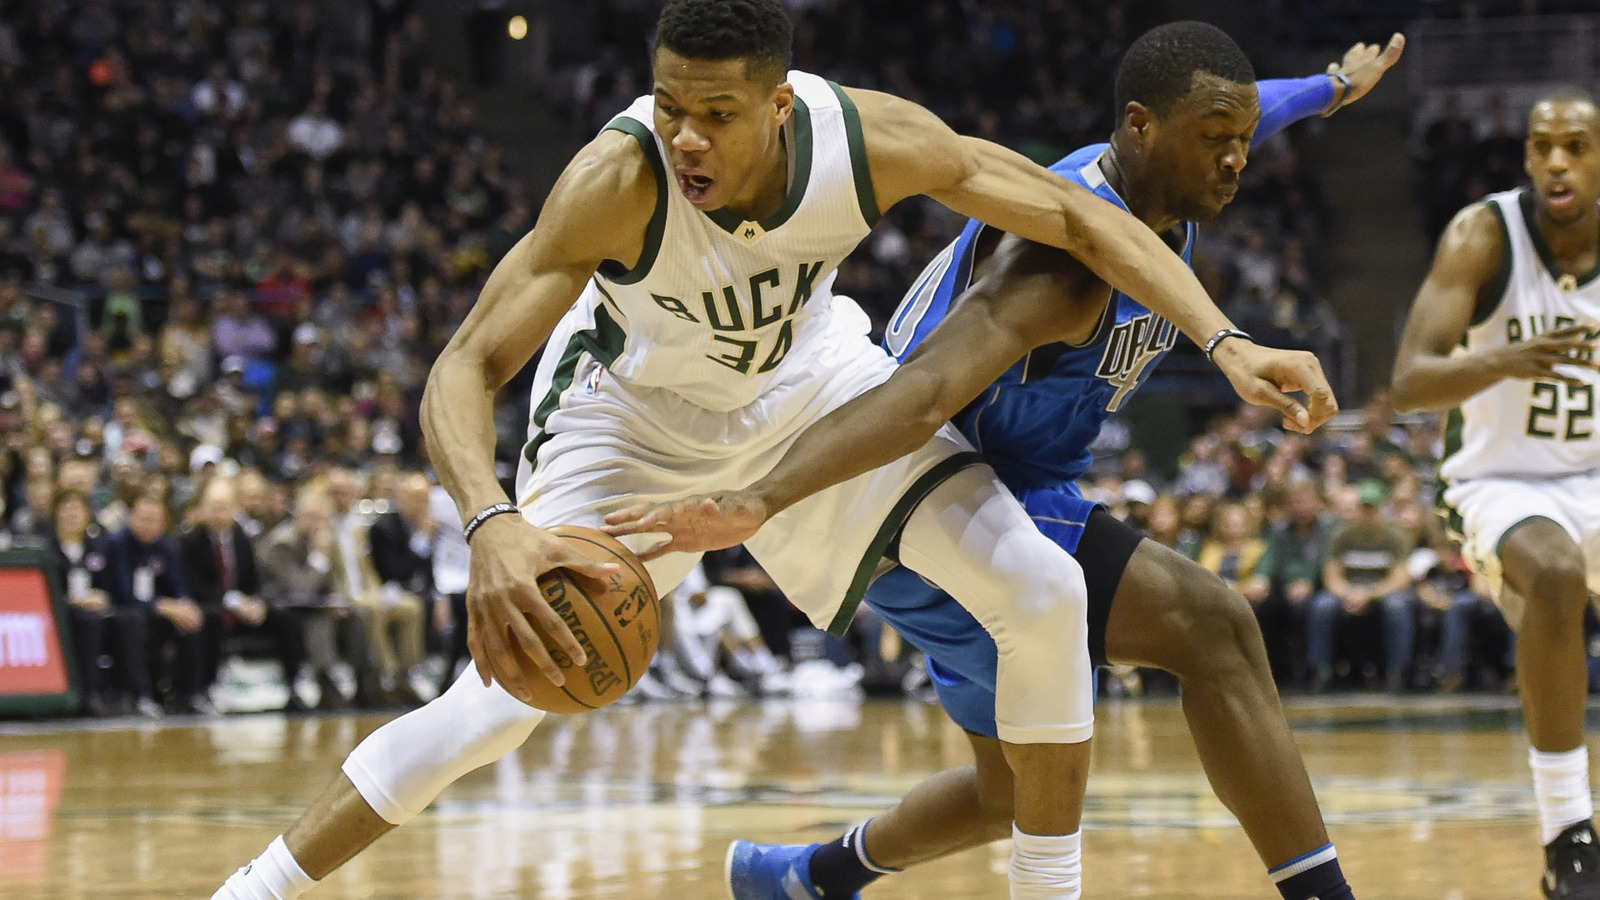 Mark Cuban admits he made final call to pass on Giannis Antetokounmpo in 2013 | Yardbarker.com